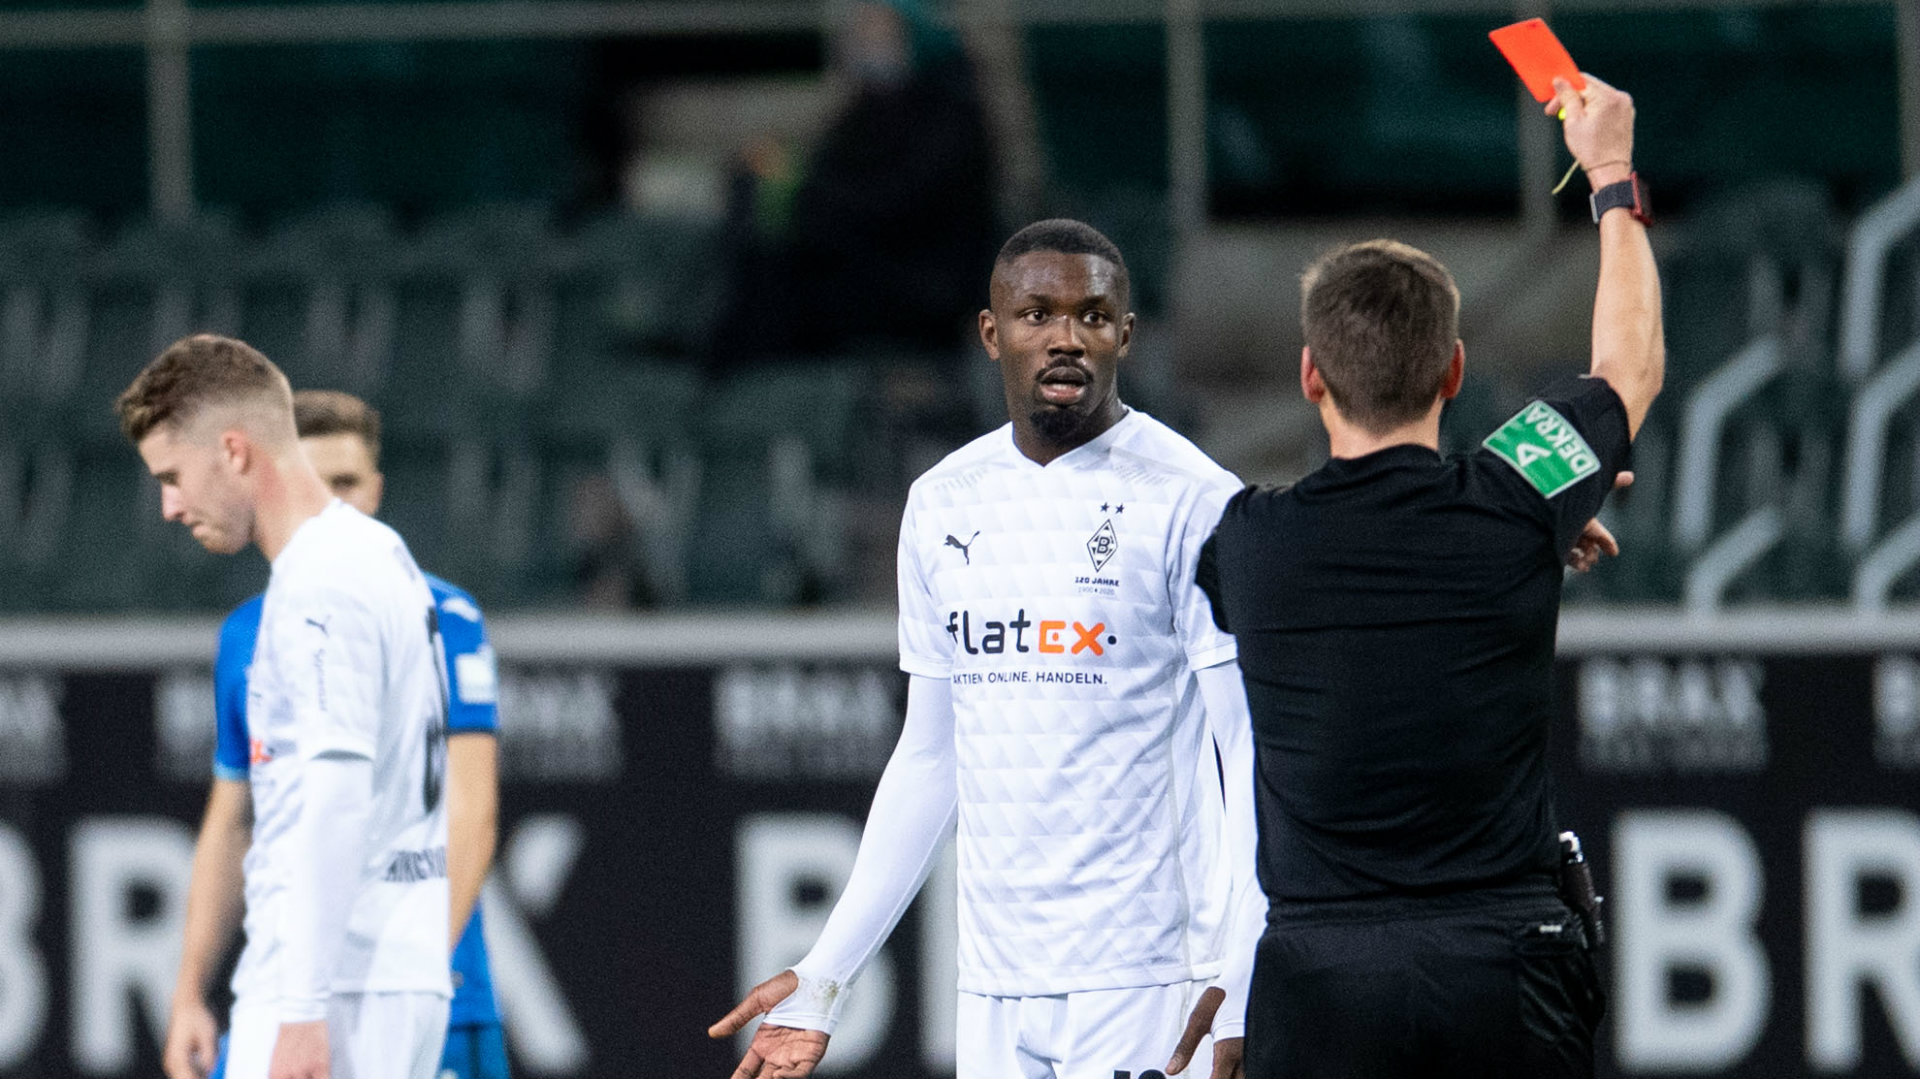 'He must have blown a fuse' - Rose apologises for Thuram spitting in face of an opponent in Gladbach's loss against Hoffenheim